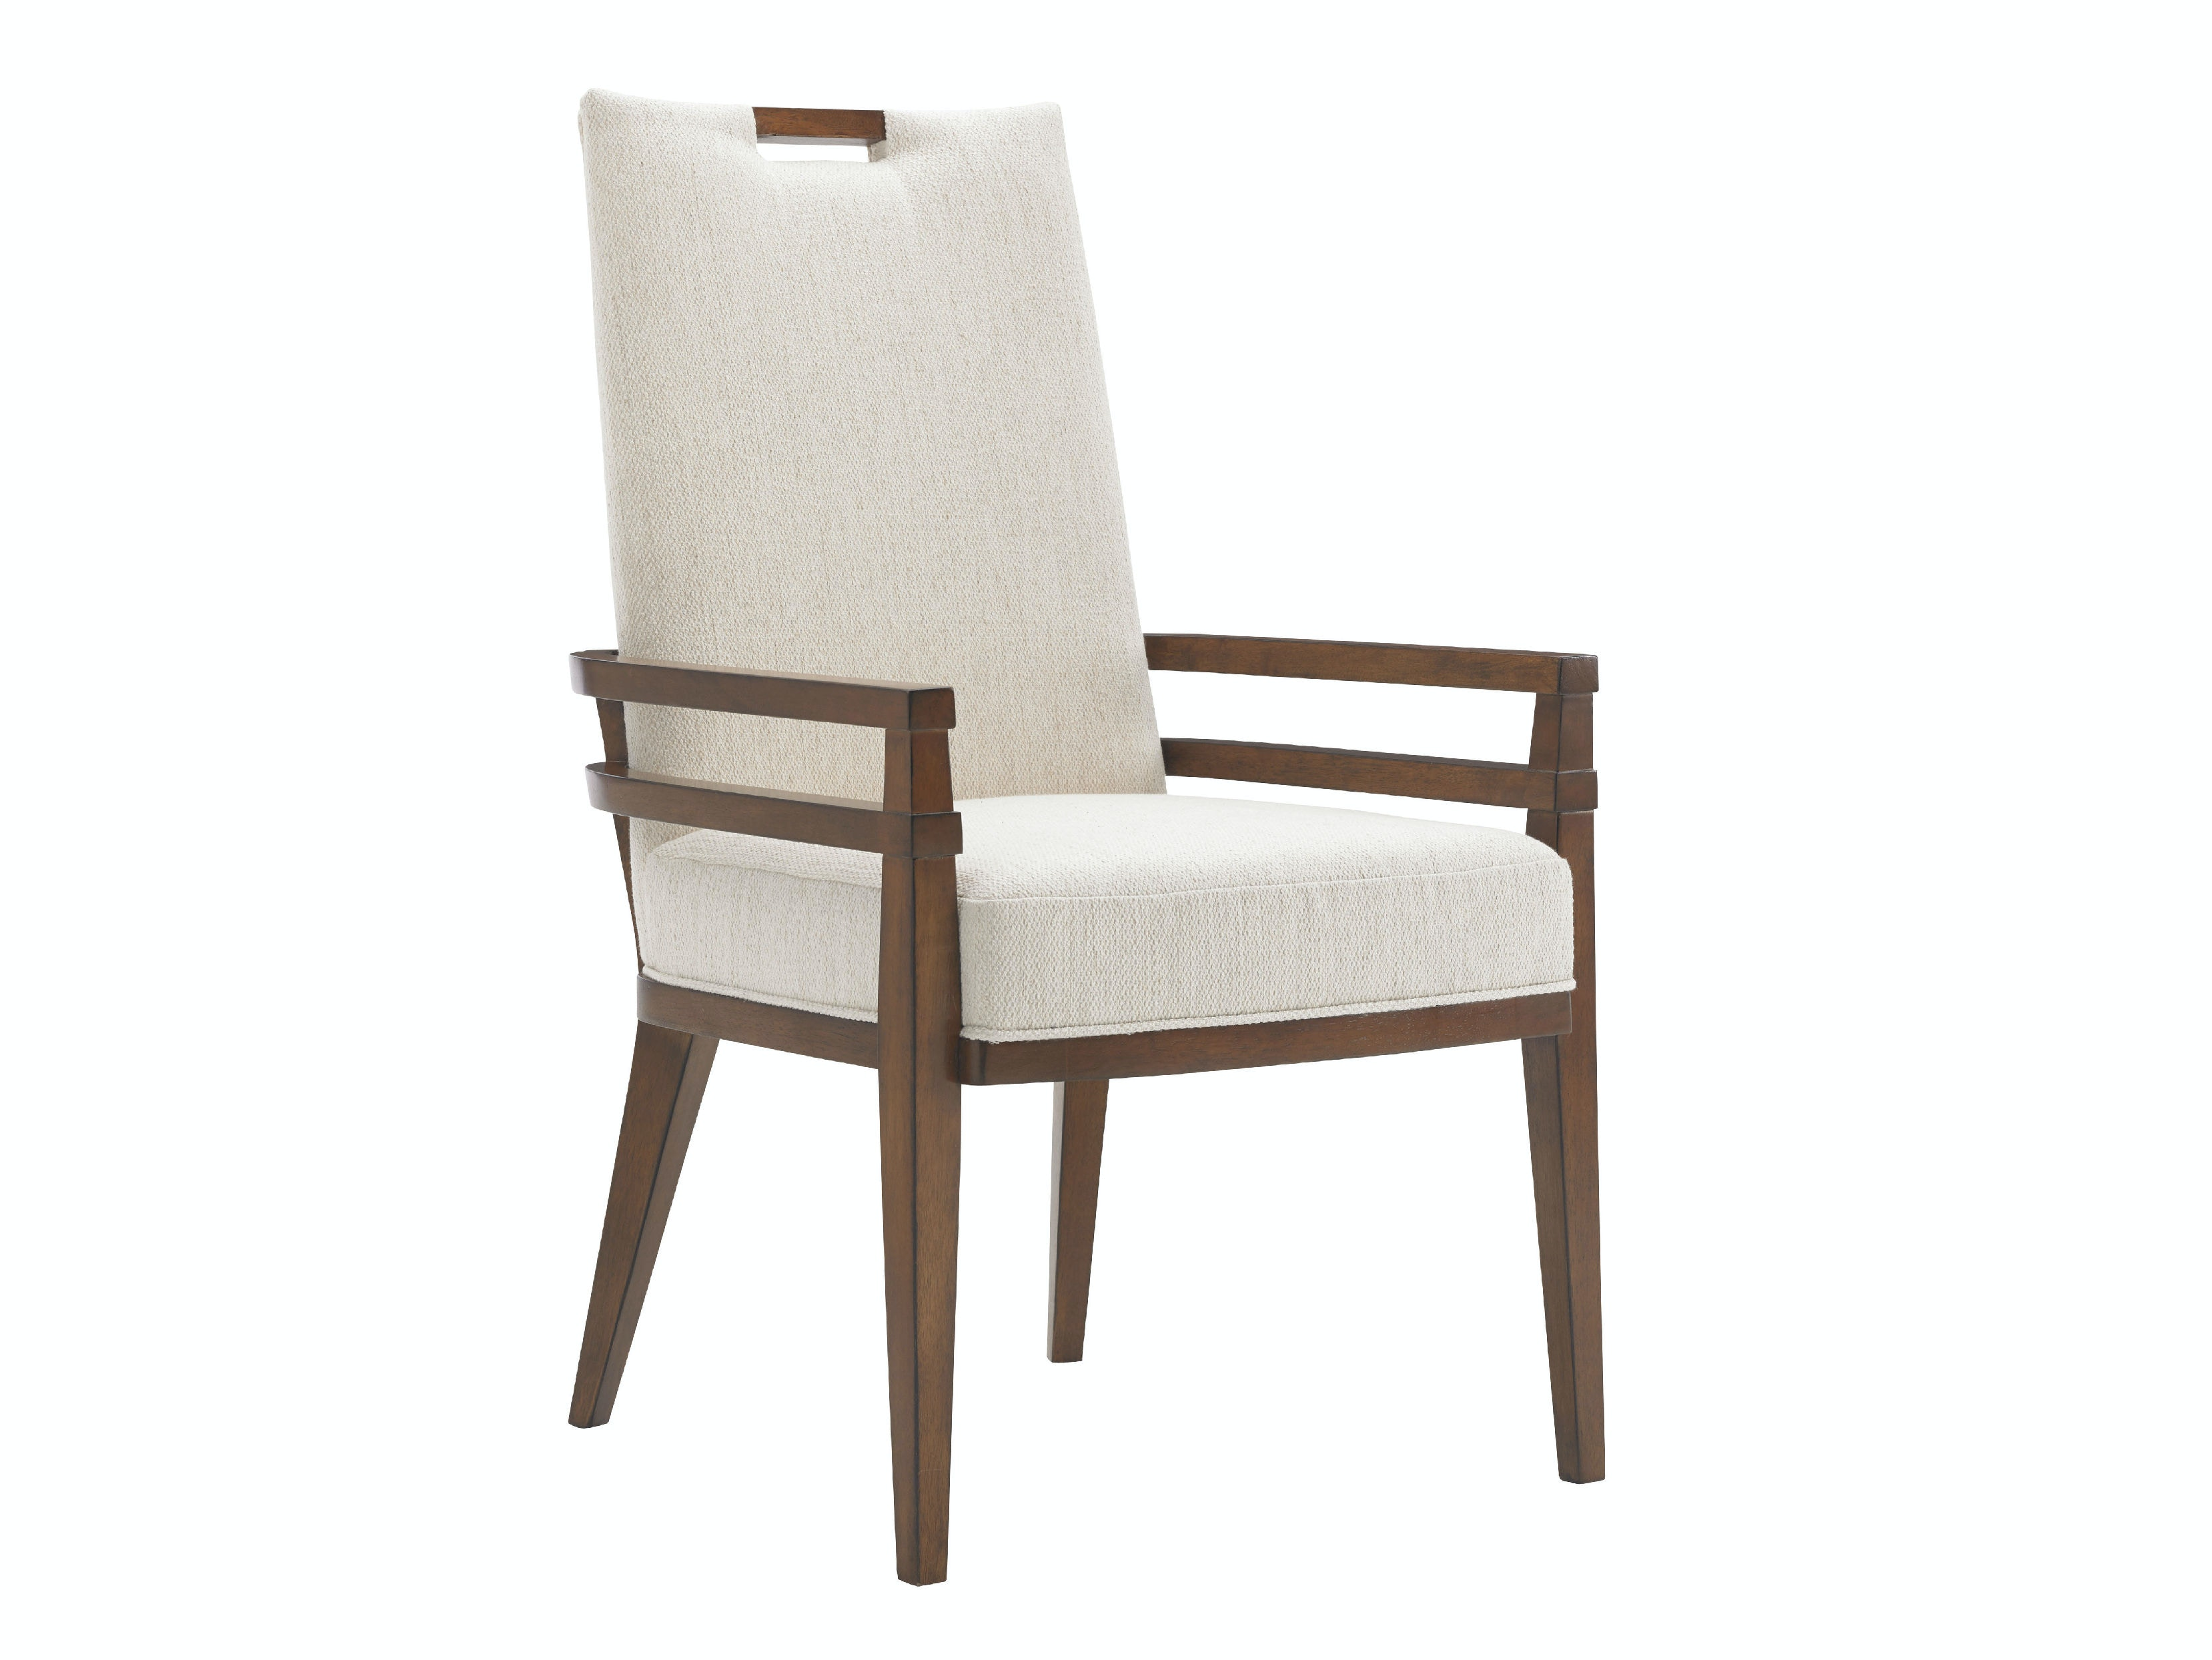 Merveilleux Tommy Bahama Home By Lexington Coles Bay Arm Chair LX01055688502 From  Walter E. Smithe Furniture